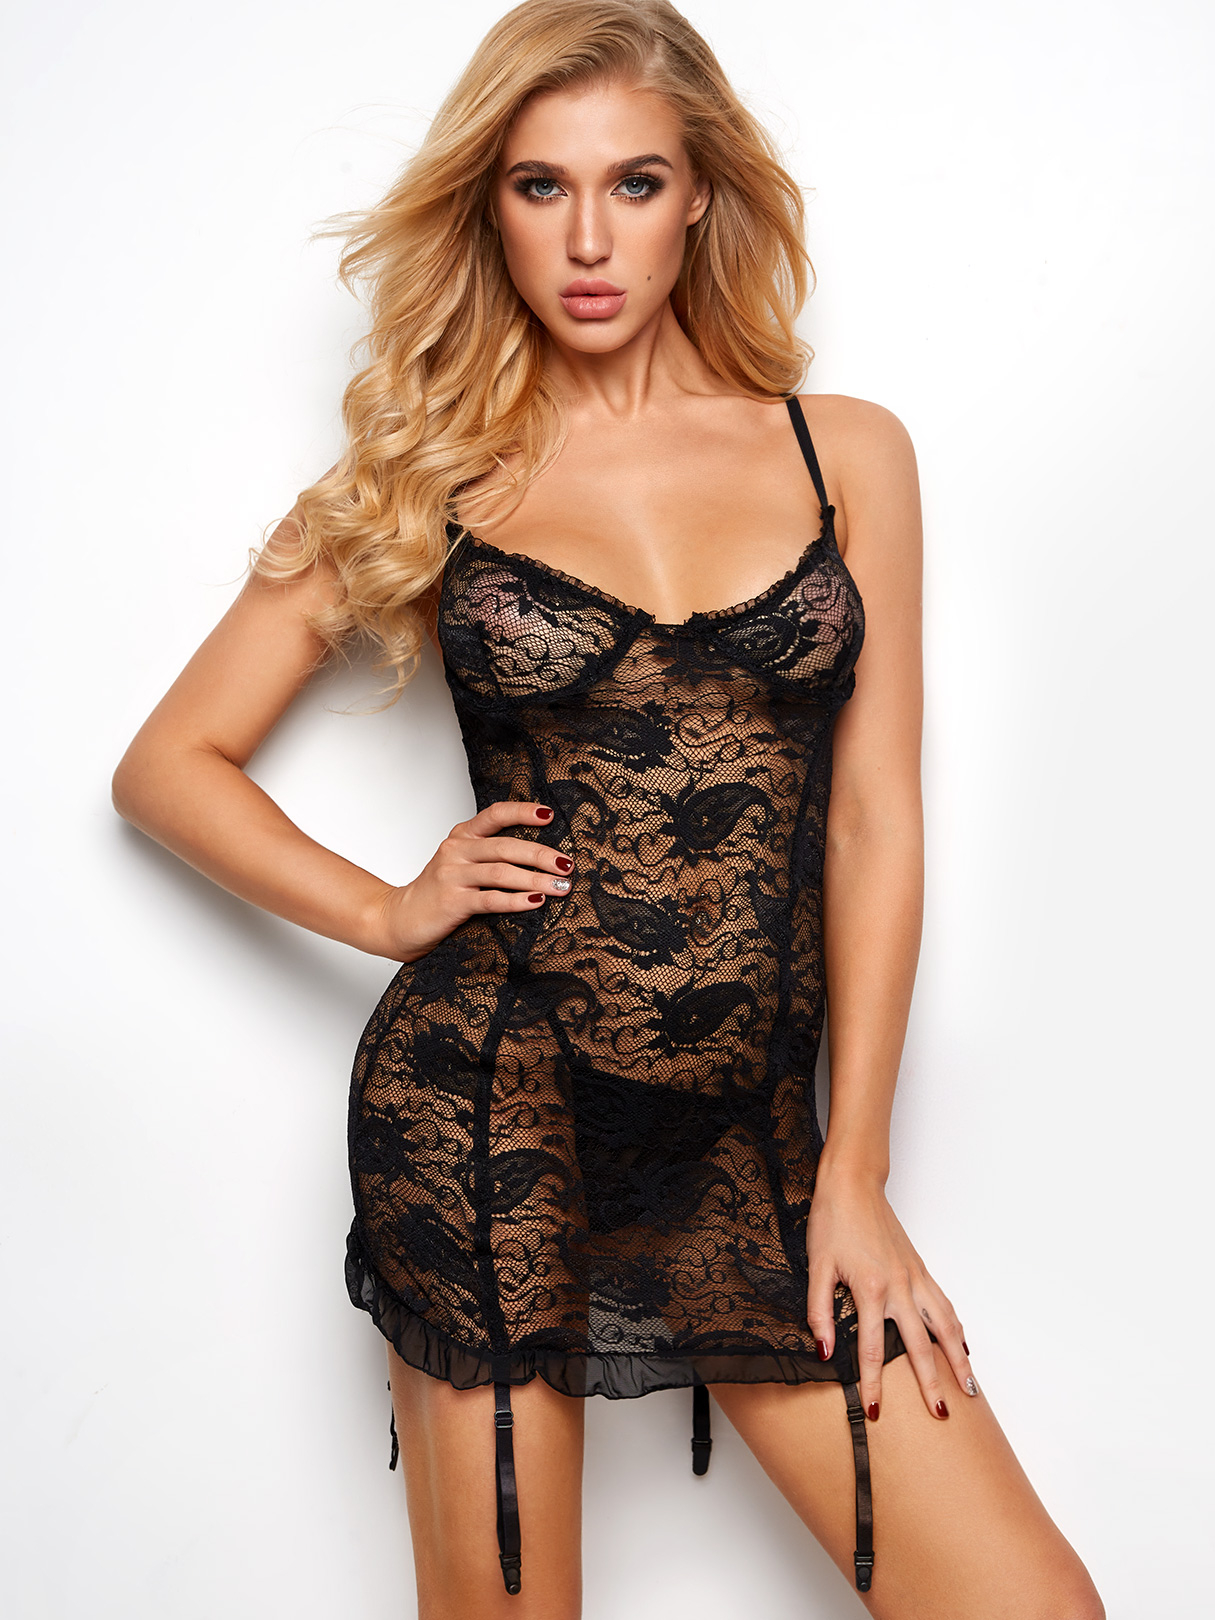 Black Lettuce Edge Floral Lace Garters Babydoll with G-strings